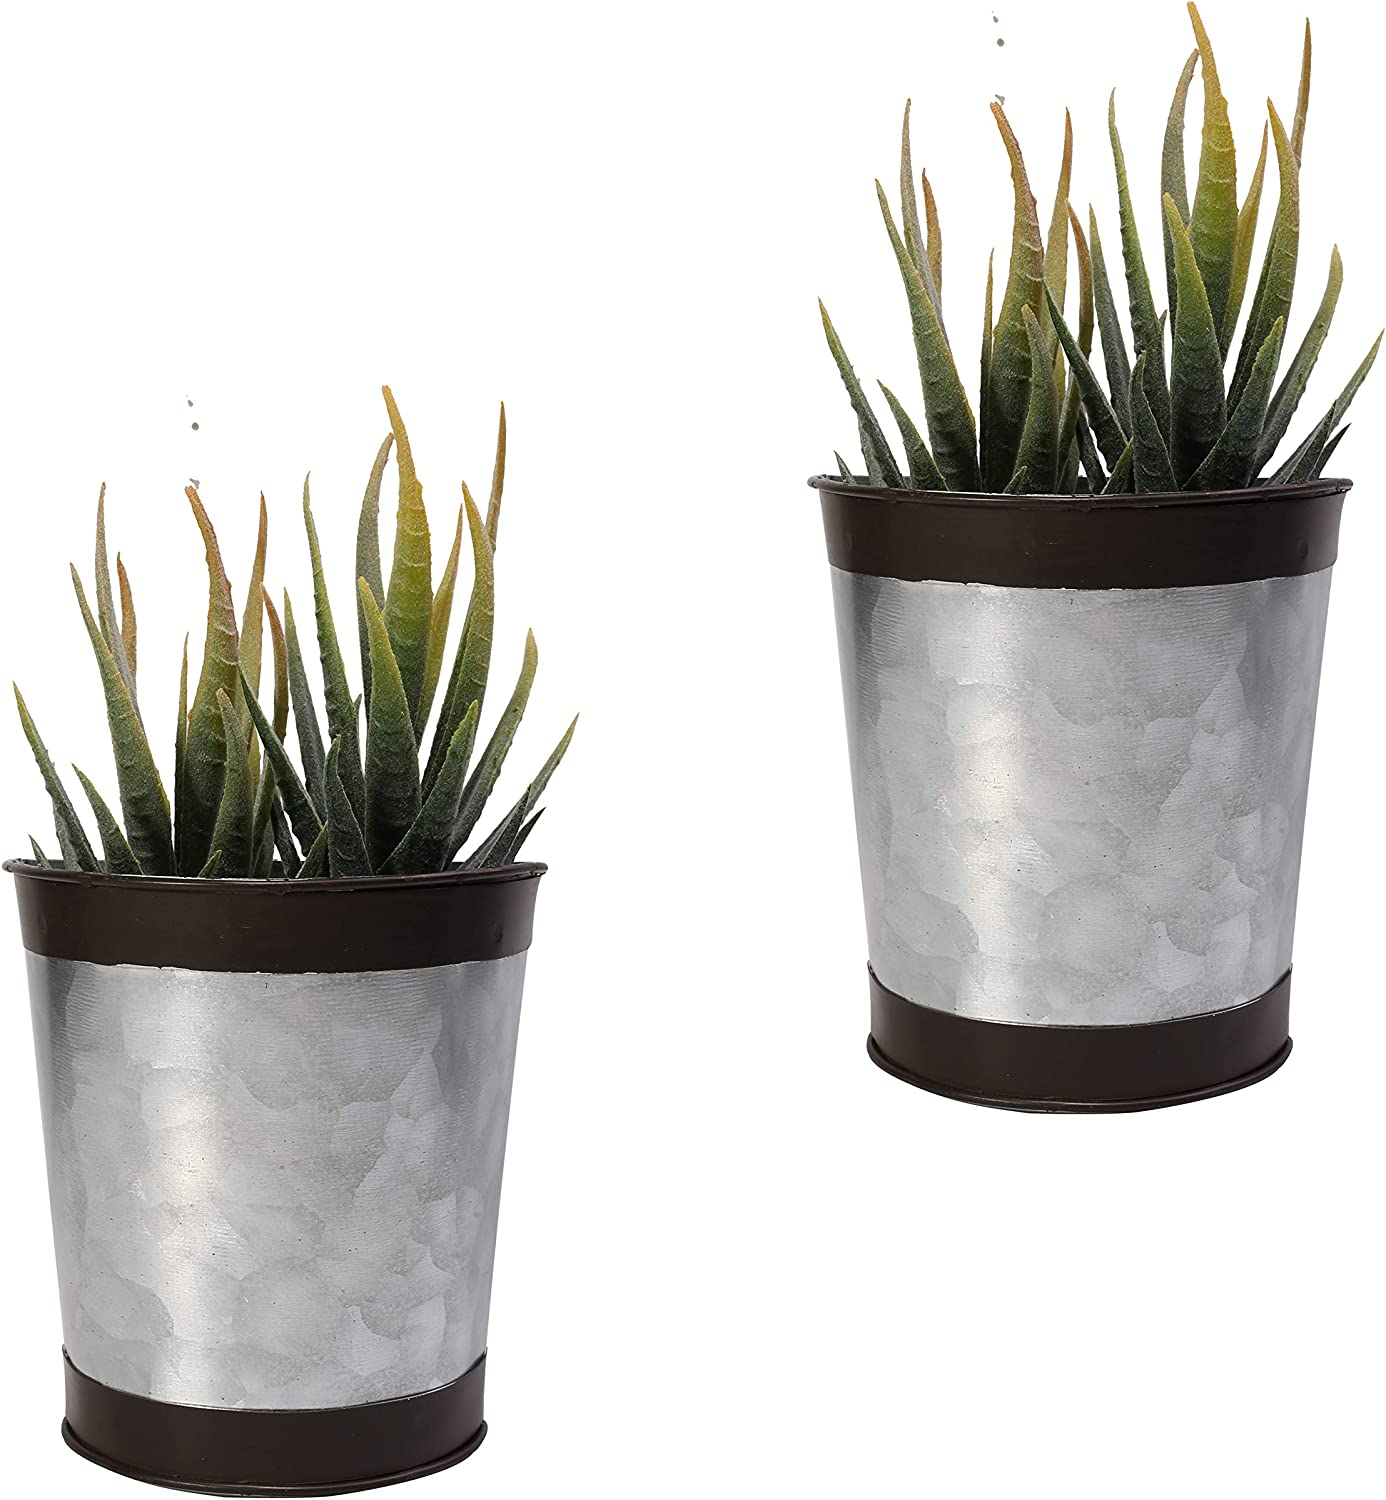 4 Inch Wall Mounted Planter Metal Hanging Plant Holder Decorative Wall Vase Planters for Succulents Indoor Home Wall Decor,Set of 2 Black